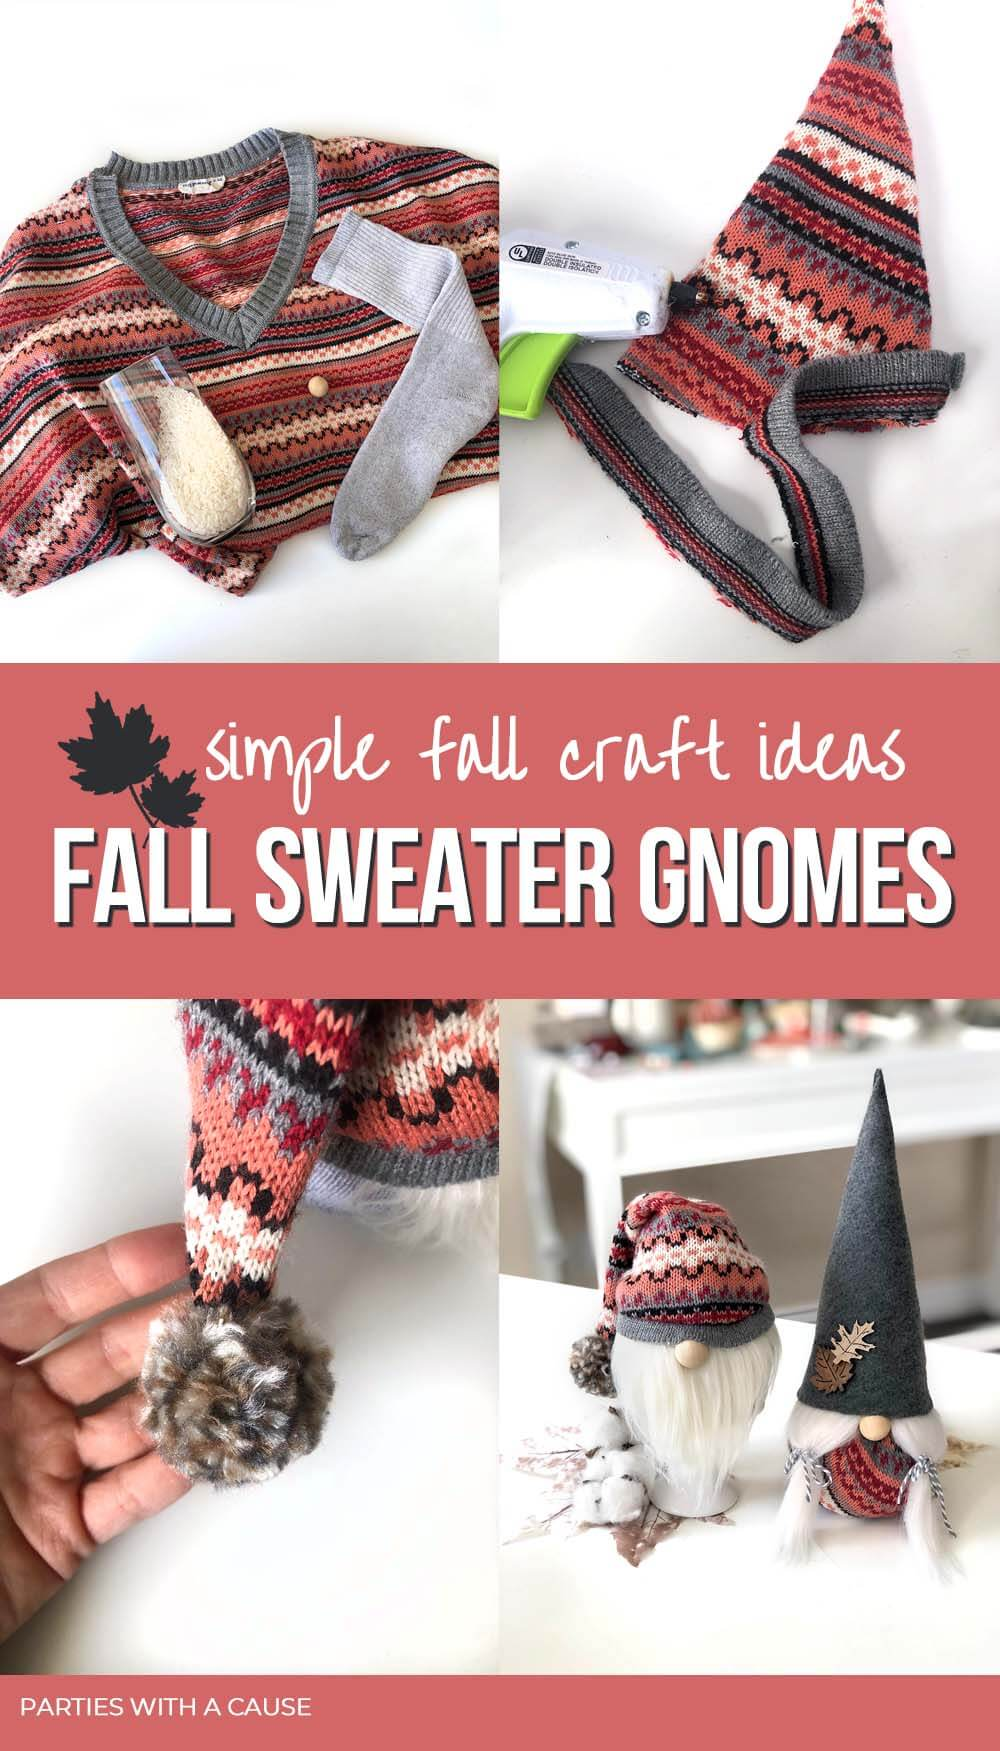 Fall sweater gnomes for thanksgiving decor